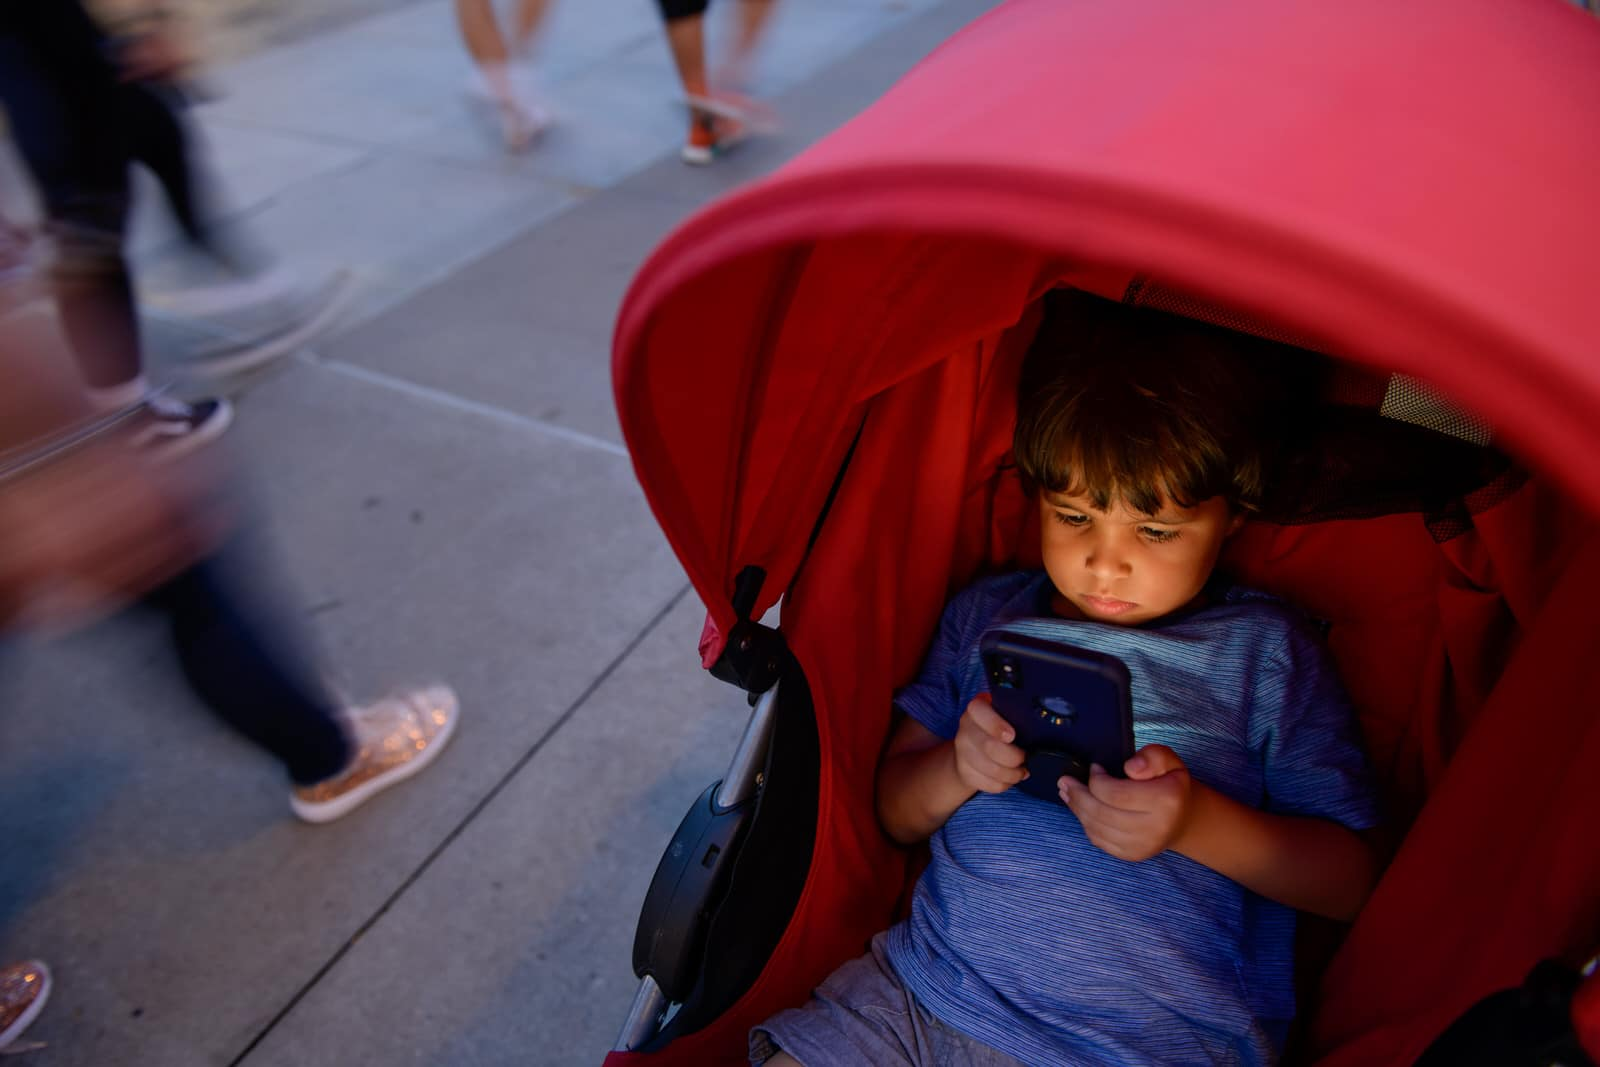 boy watches phone while crowd walks by